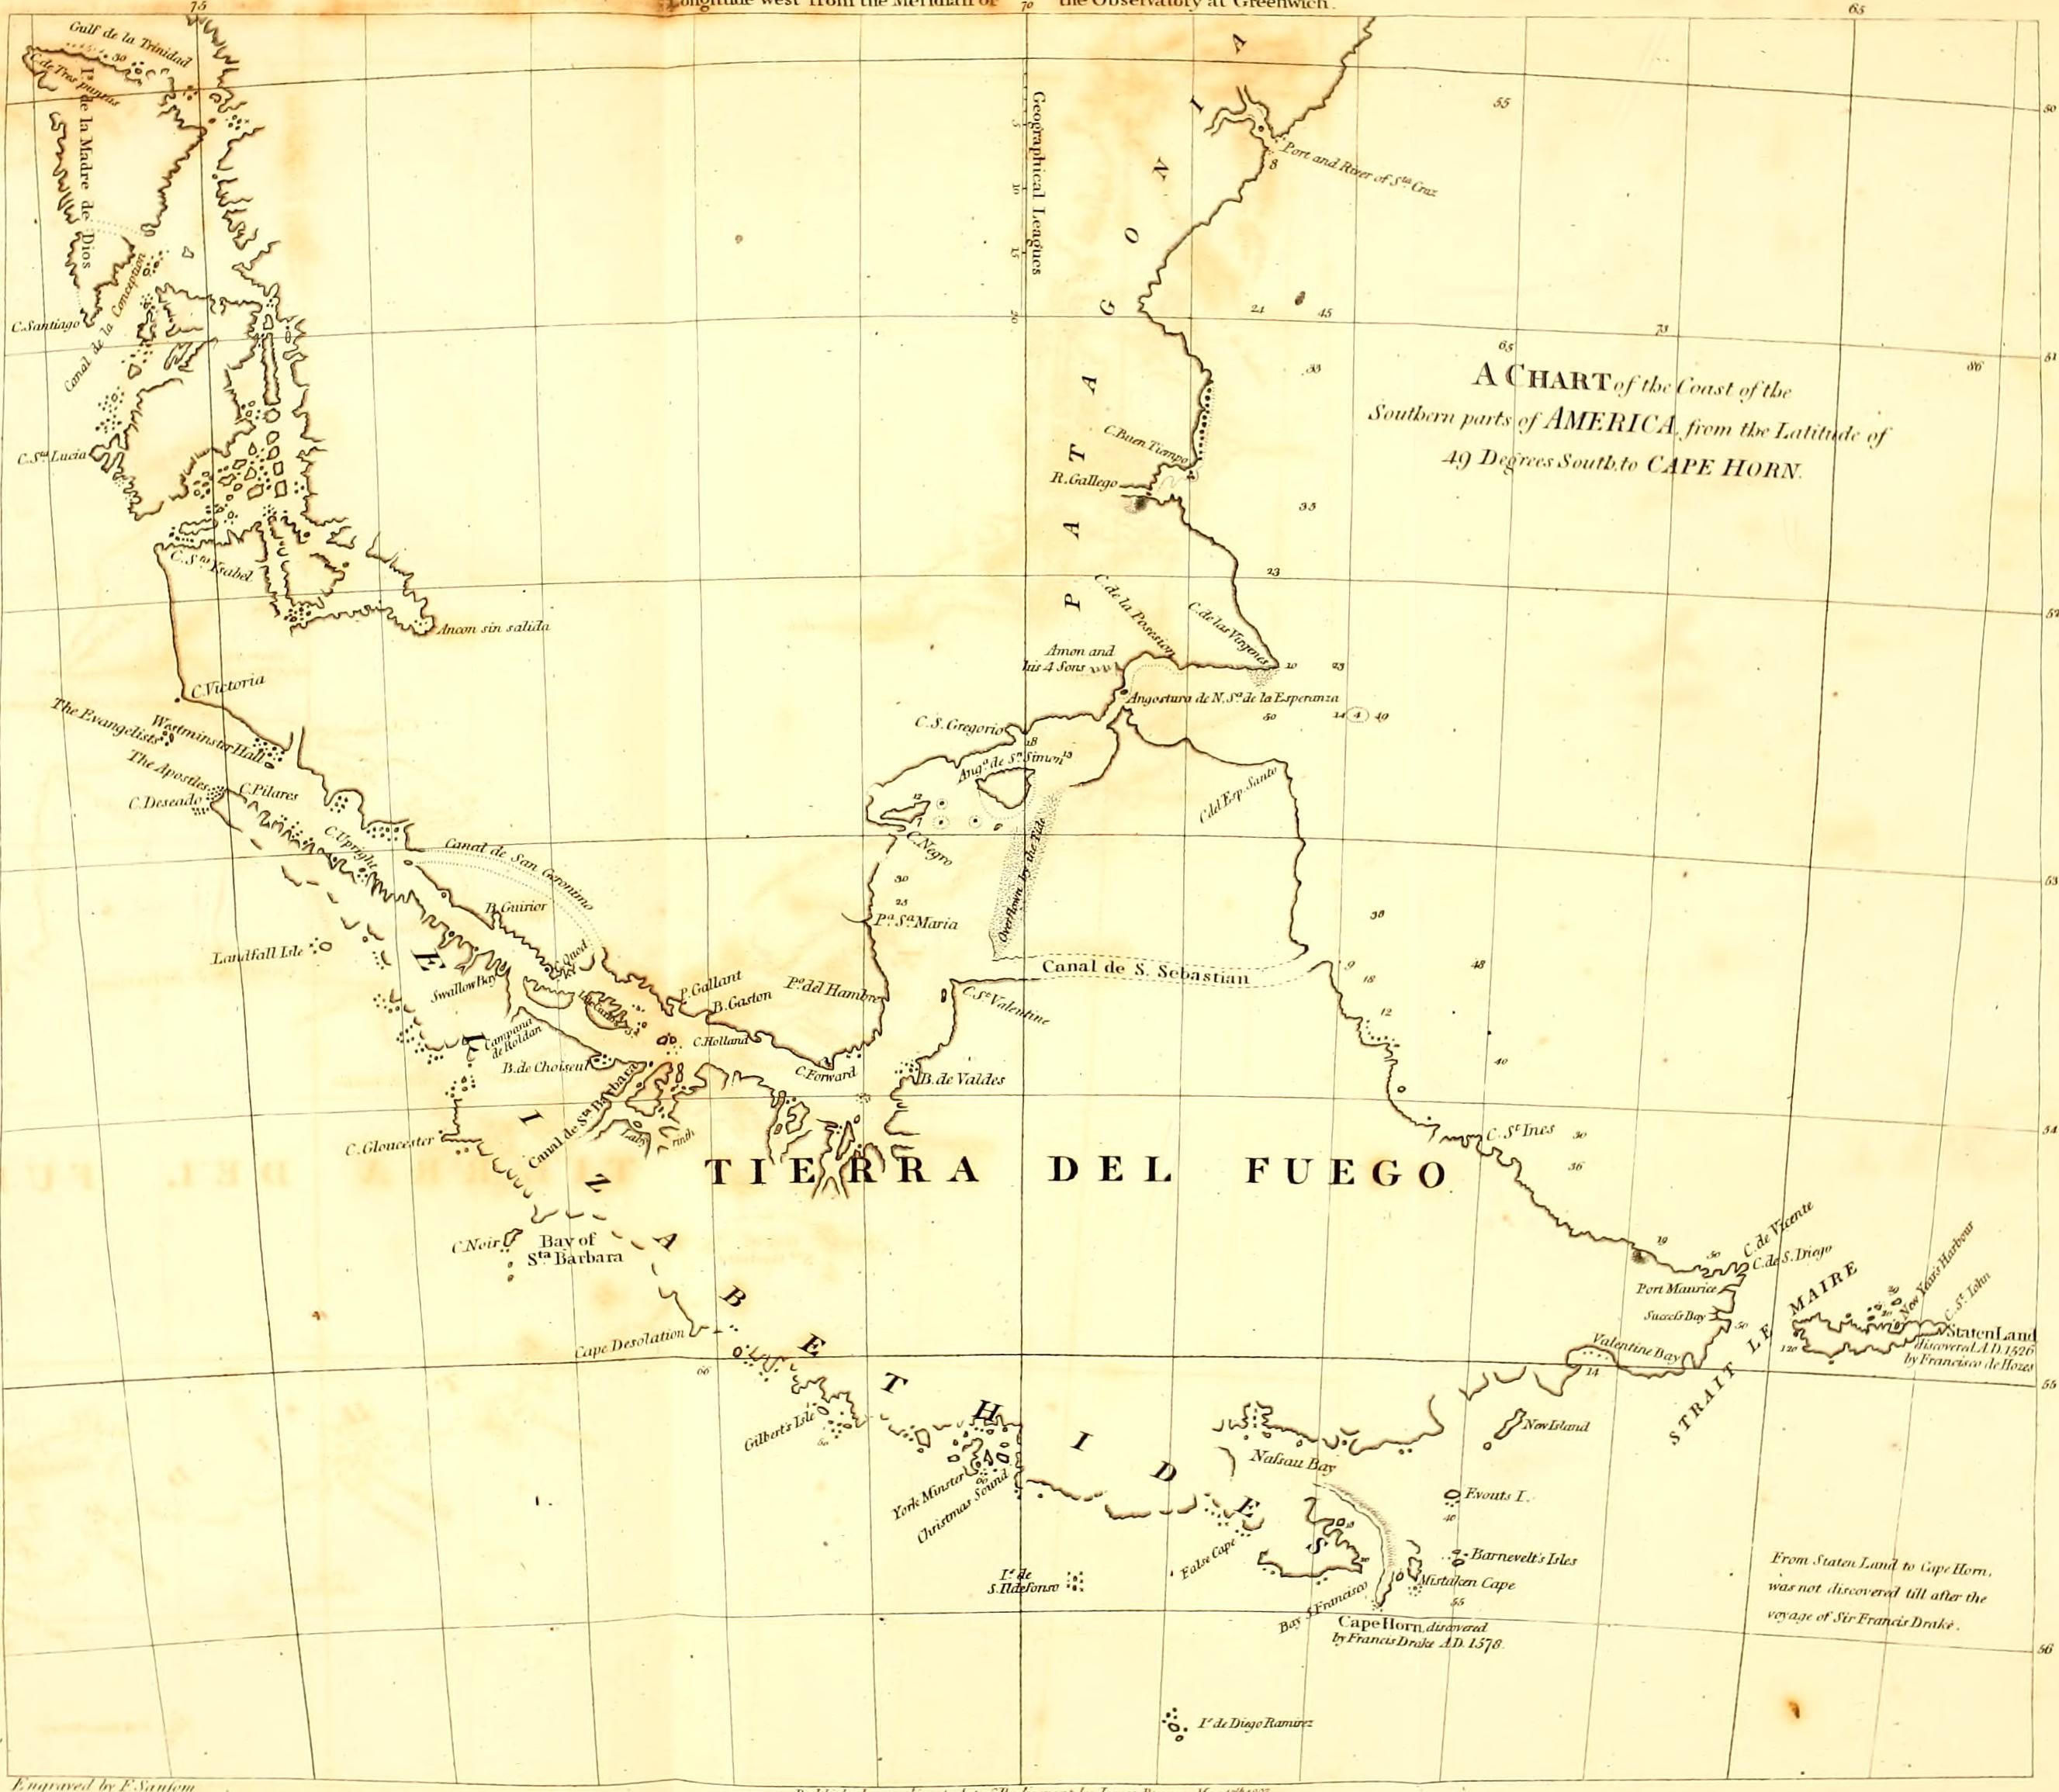 Fly Sea Charts: A chronological history of the discoveries in the South Sea ,Chart